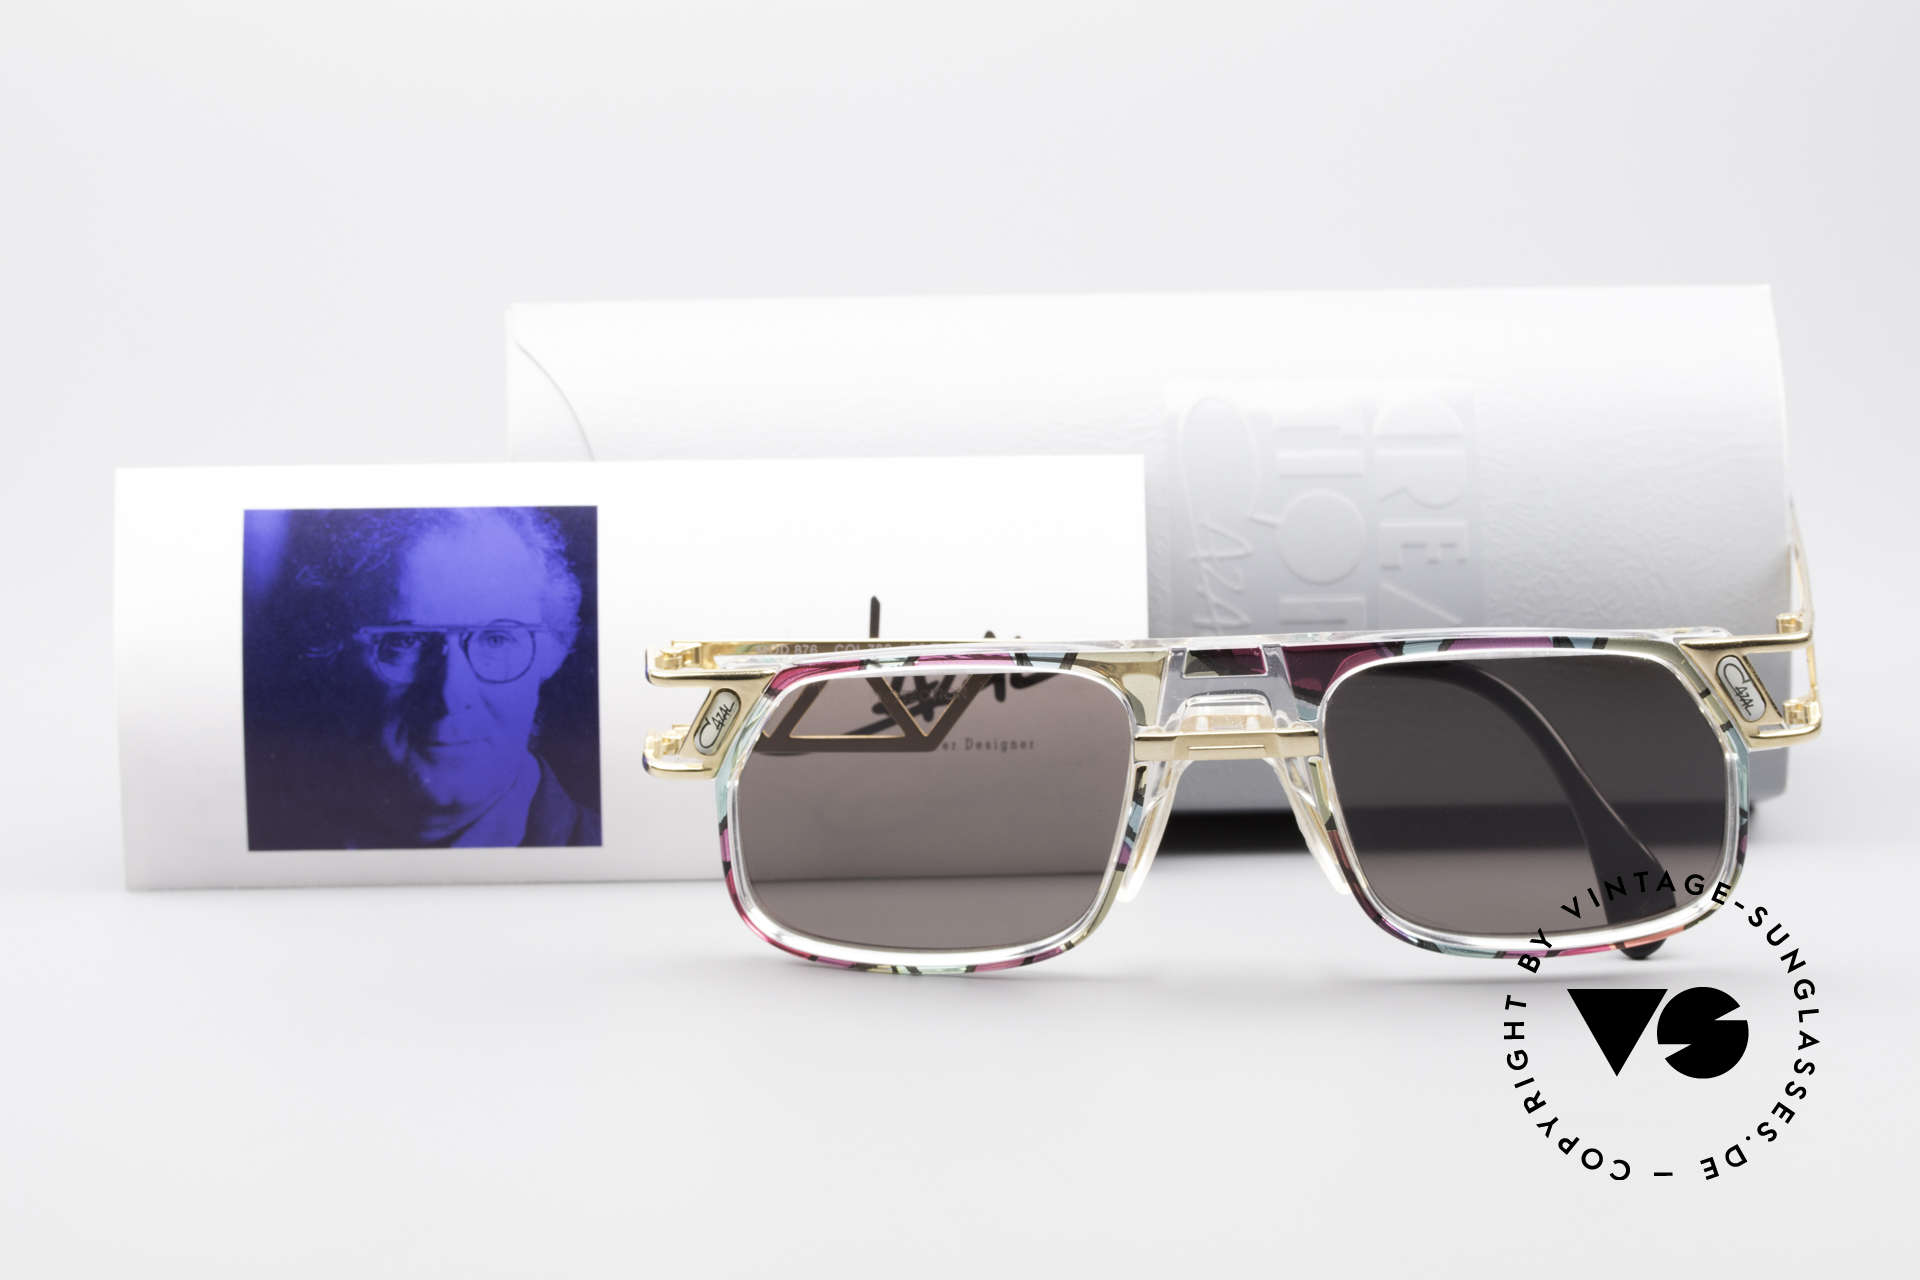 Cazal 876 True 90's No Retro Sunglasses, Size: large, Made for Men and Women